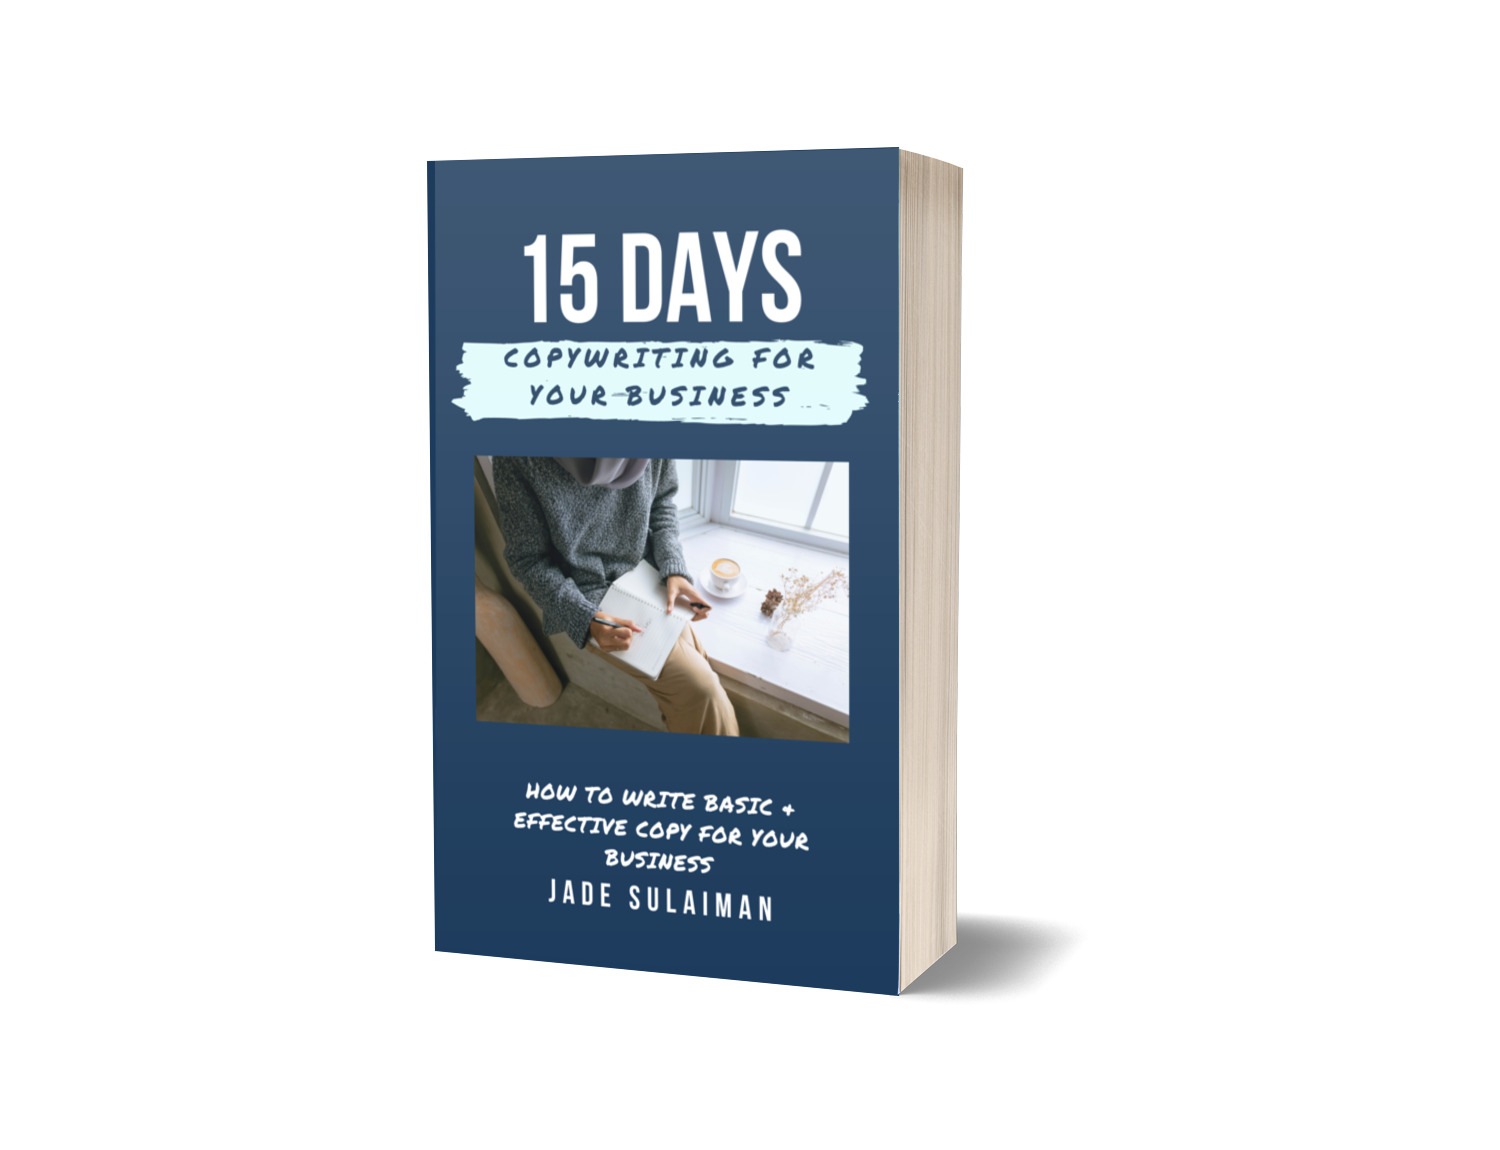 15 days of copywriting for your business